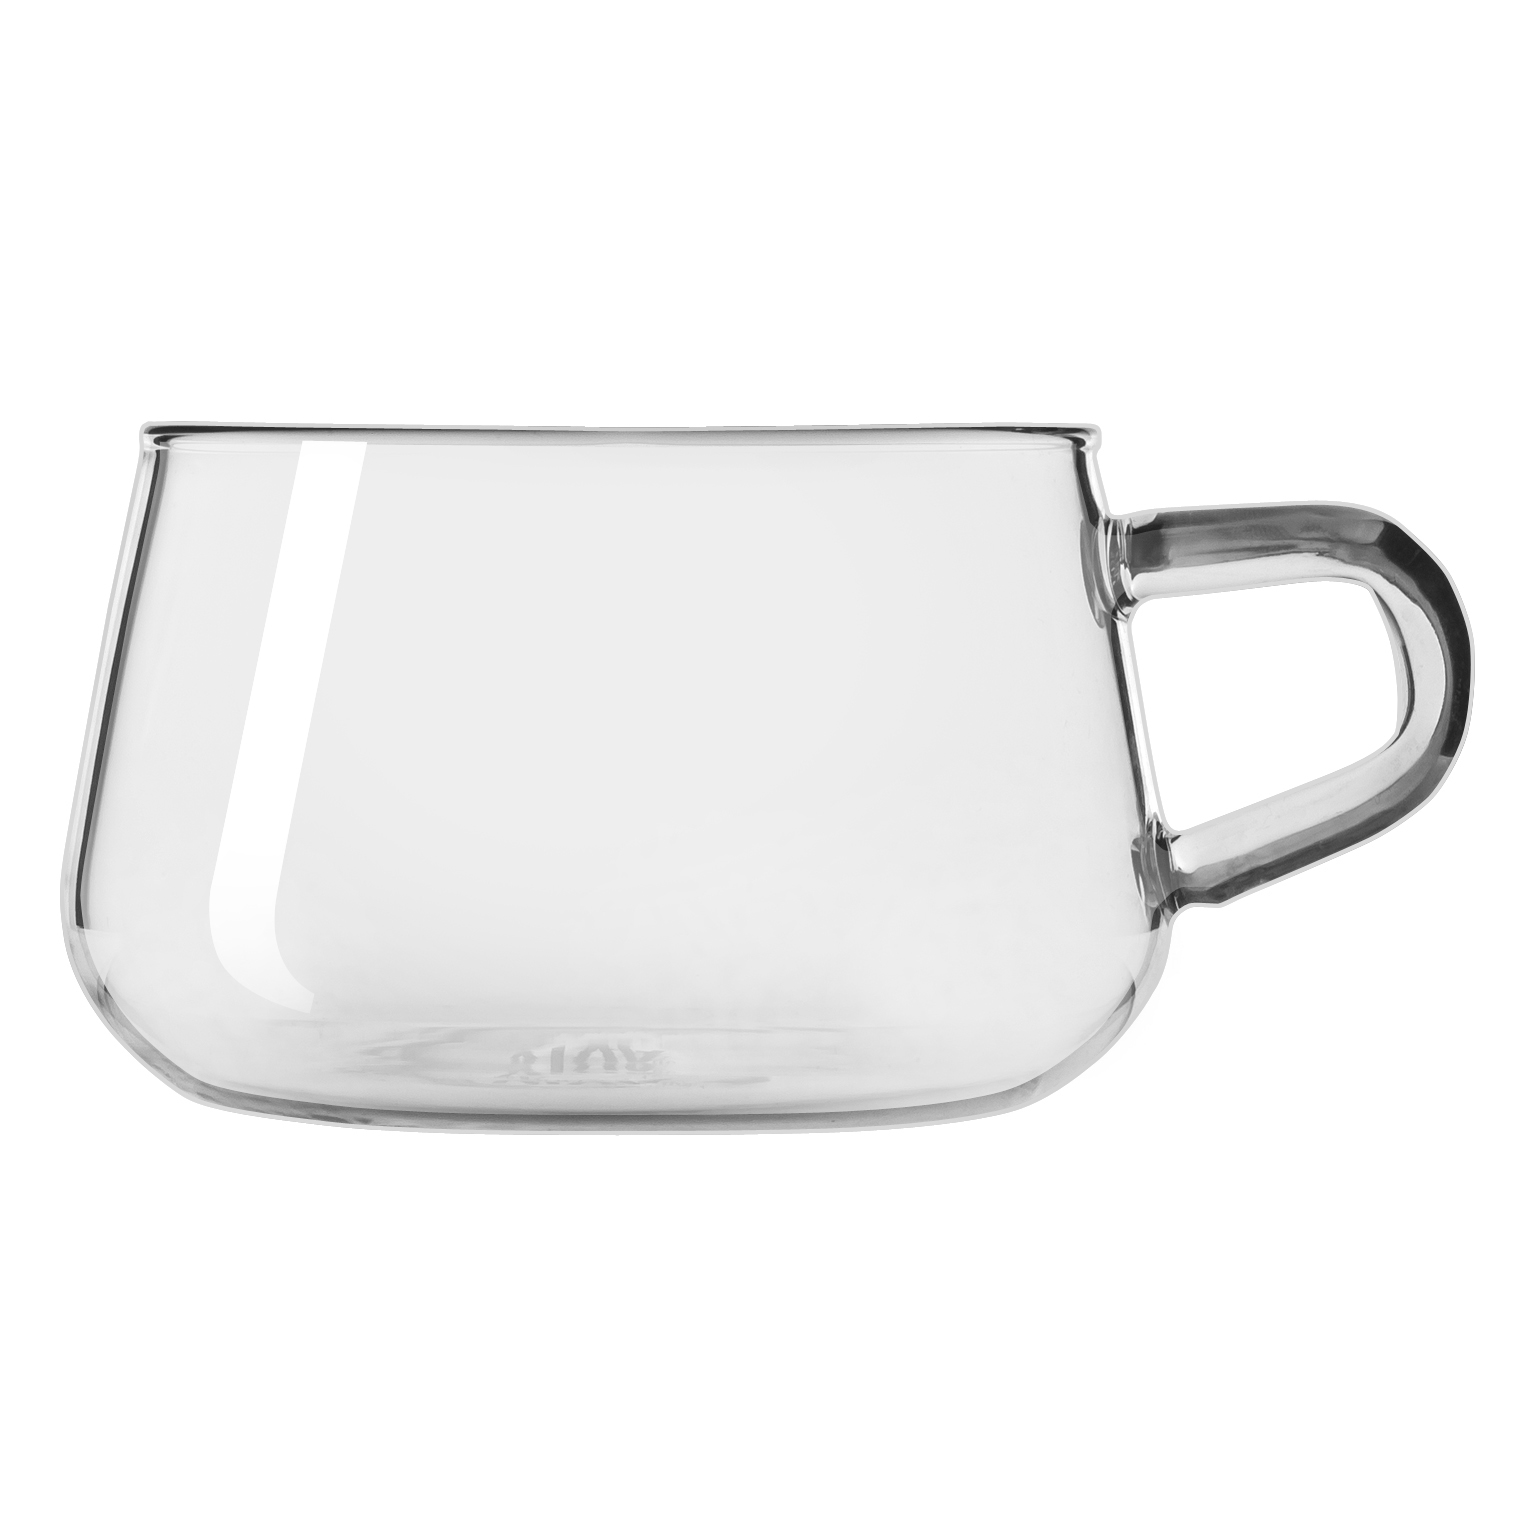 Libbey Glass VS75800 mug, glass, coffee